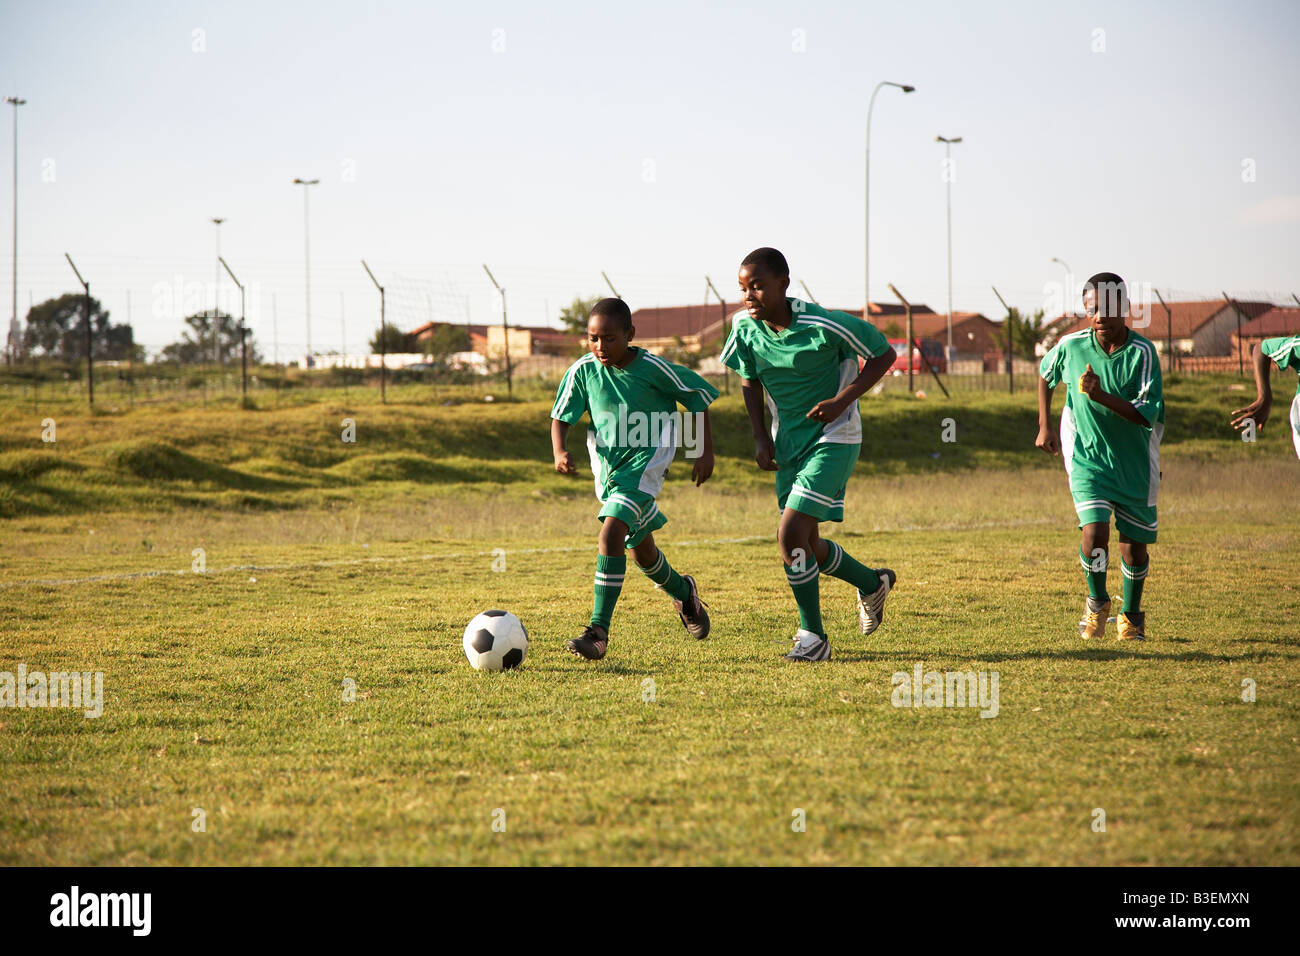 13MA-034 © Monkeyapple  aFRIKA Collection  Great Stock !  Young team playing soccer - Stock Image